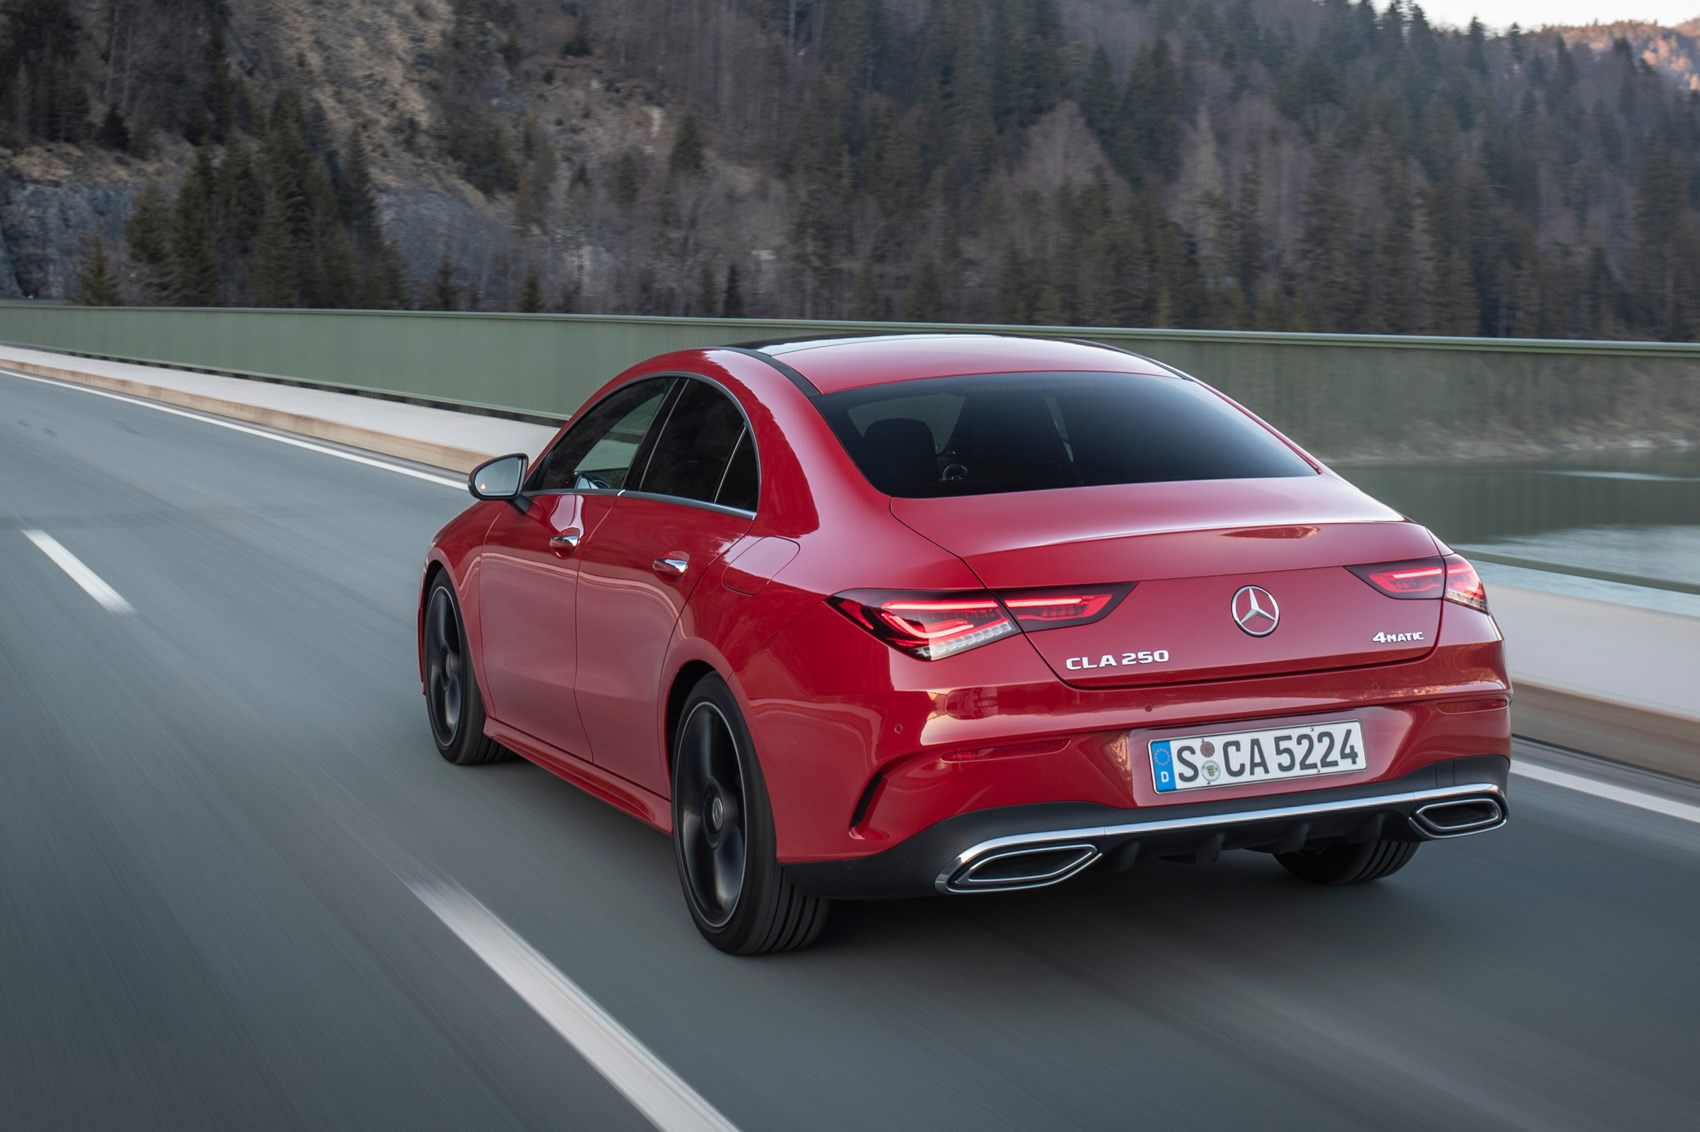 mercedes cla 2019 review first drive of four door coupe. Black Bedroom Furniture Sets. Home Design Ideas